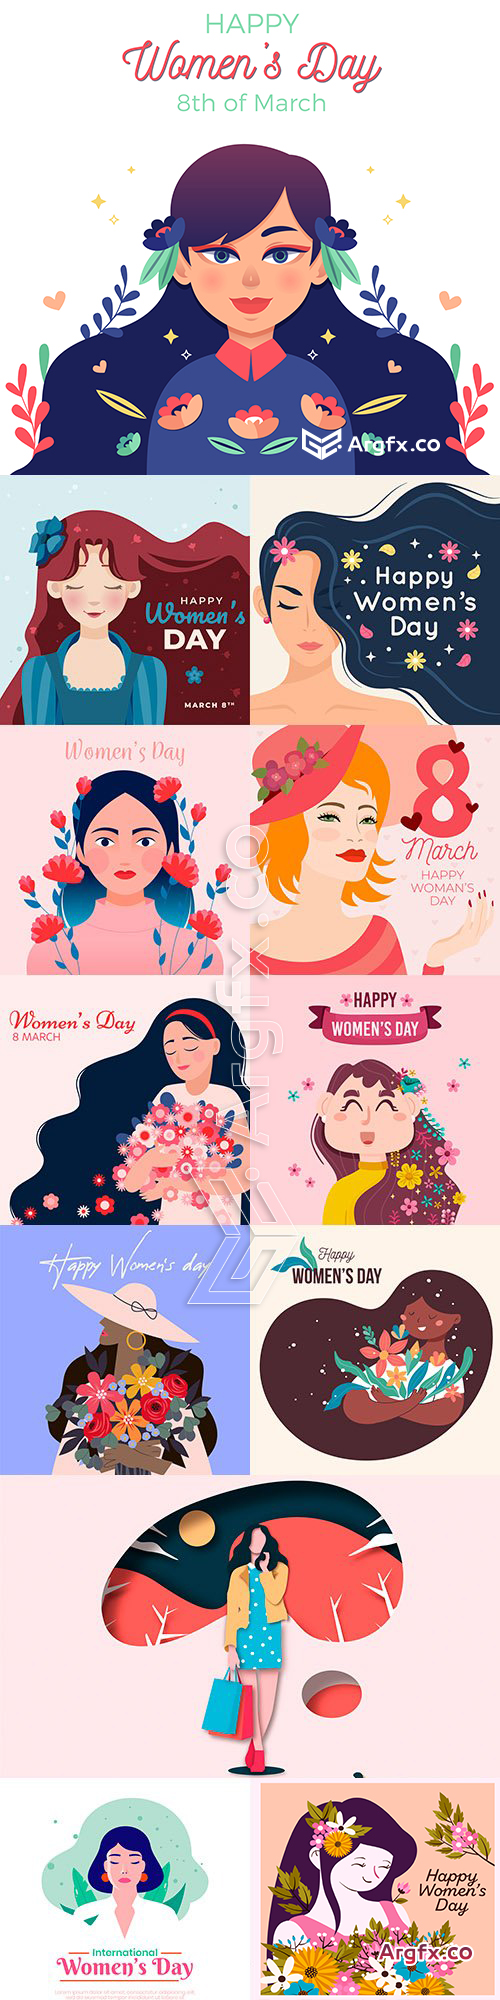 March 8 and Women's Day illustration flat design 6